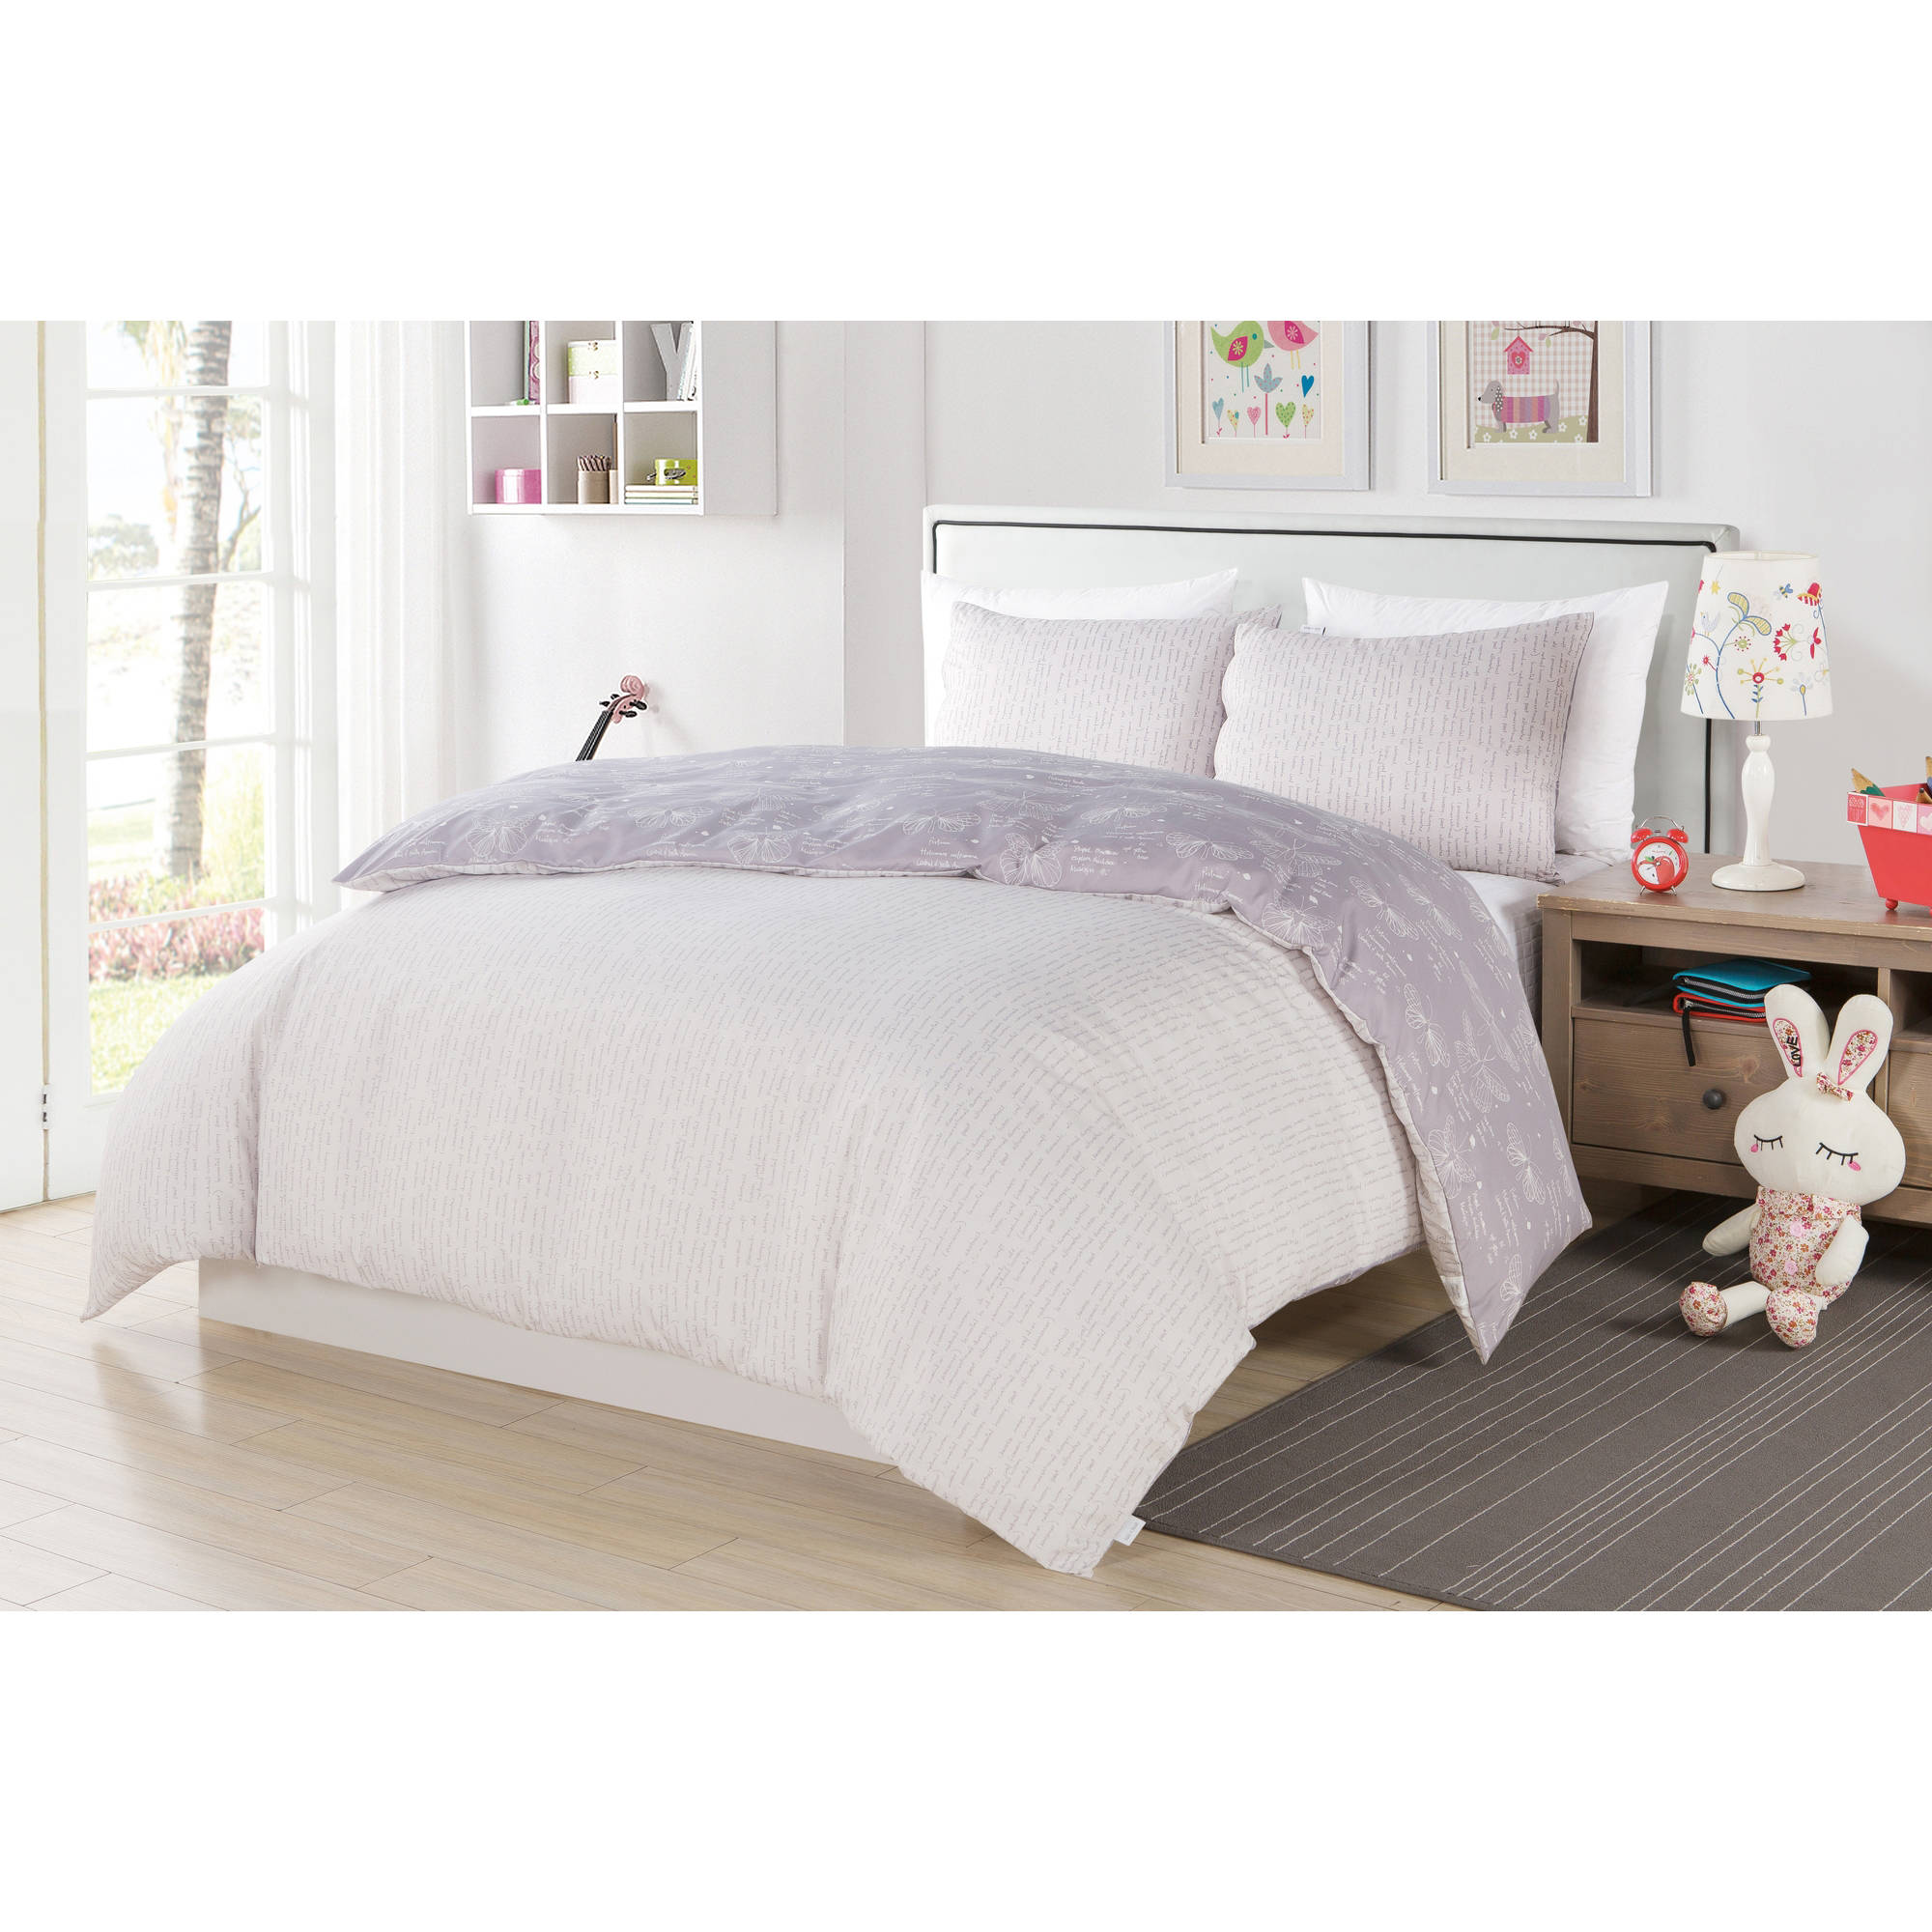 Malar Butterfly 3 Piece Full Comforter Set in Grey-White